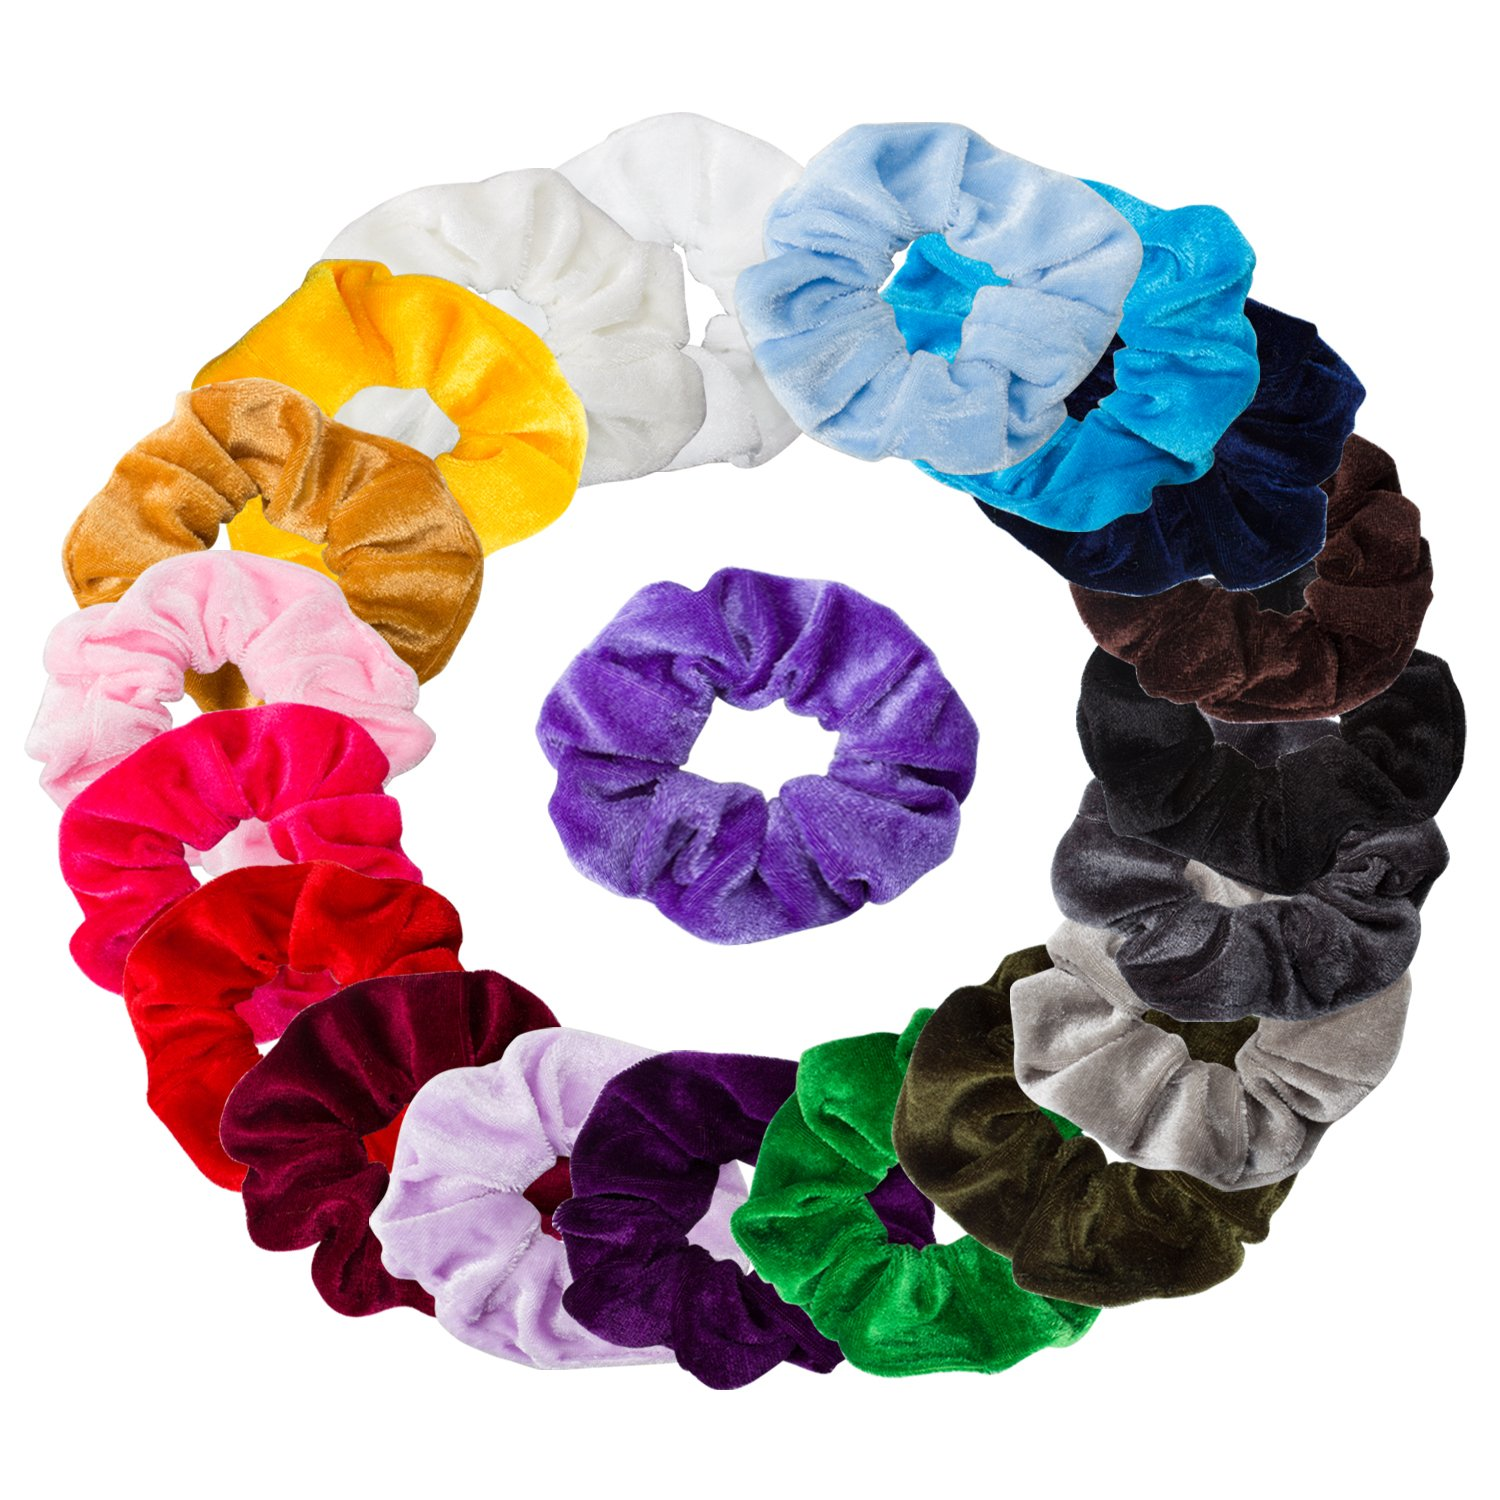 Ondder 20 Pack Velvet Scrunchies Hair Bobble Elastics Hair Scrunchy Hair Bands Headbands Women Scrunchies Bobbles Hair Ties, 20 Assorted Colors